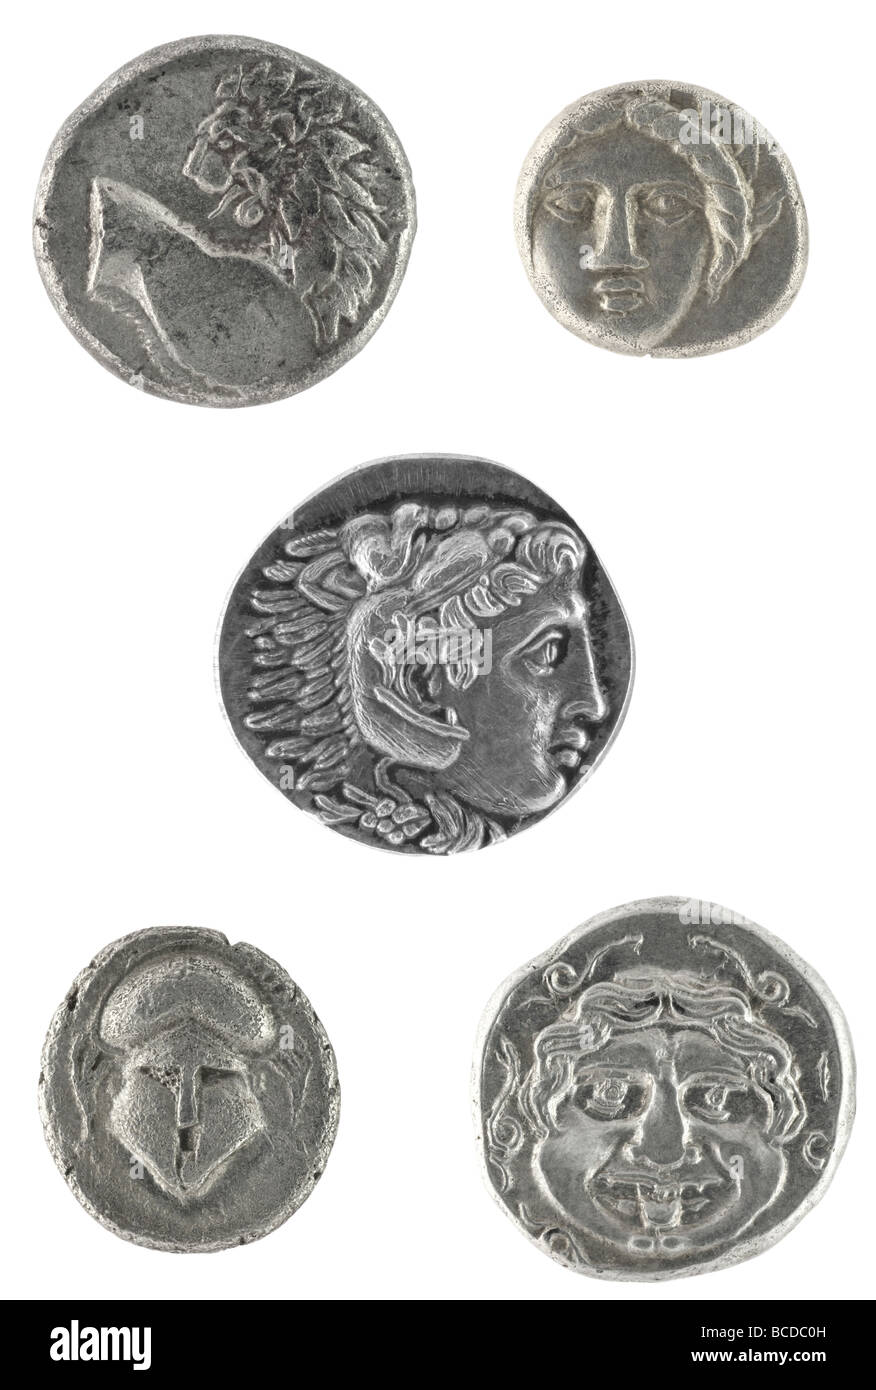 Ancient Greek coins - Stock Image